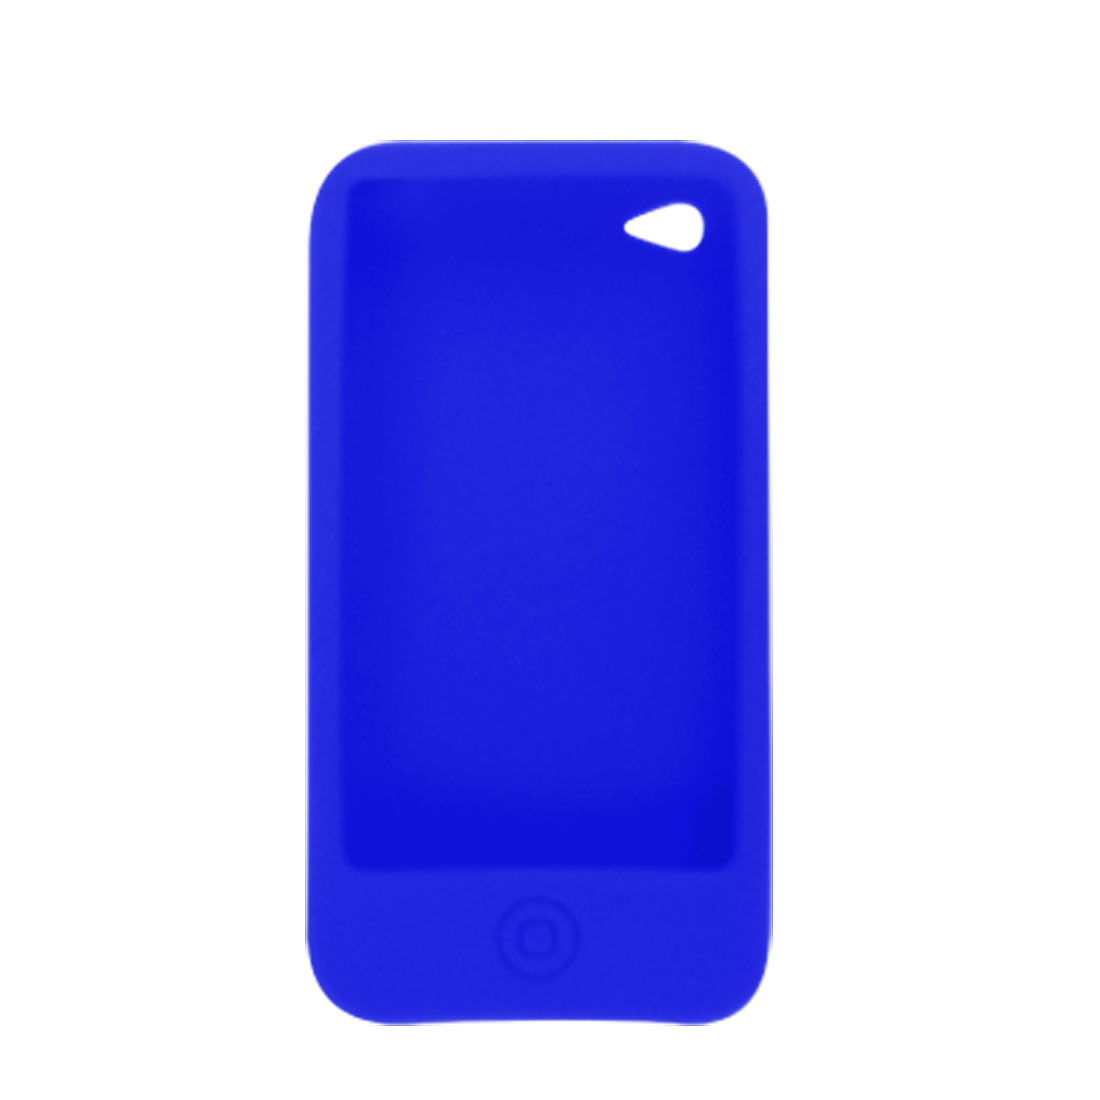 Blue Silicone Soft Press Button Case + Screen Protector for iPhone 4 4G